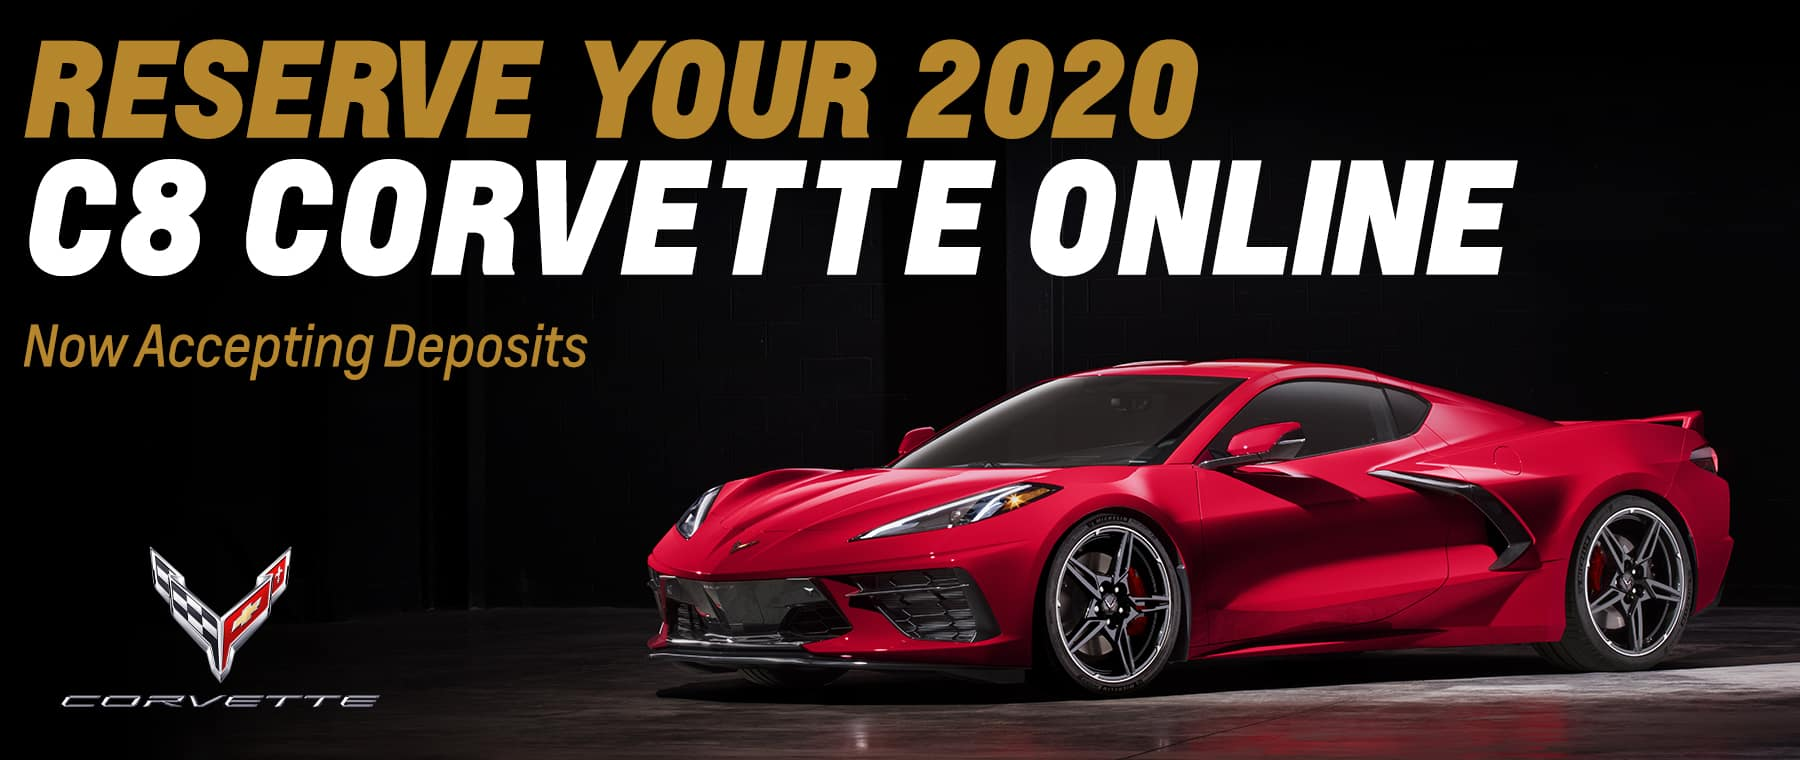 Reserve Your 2020 Corvette banner